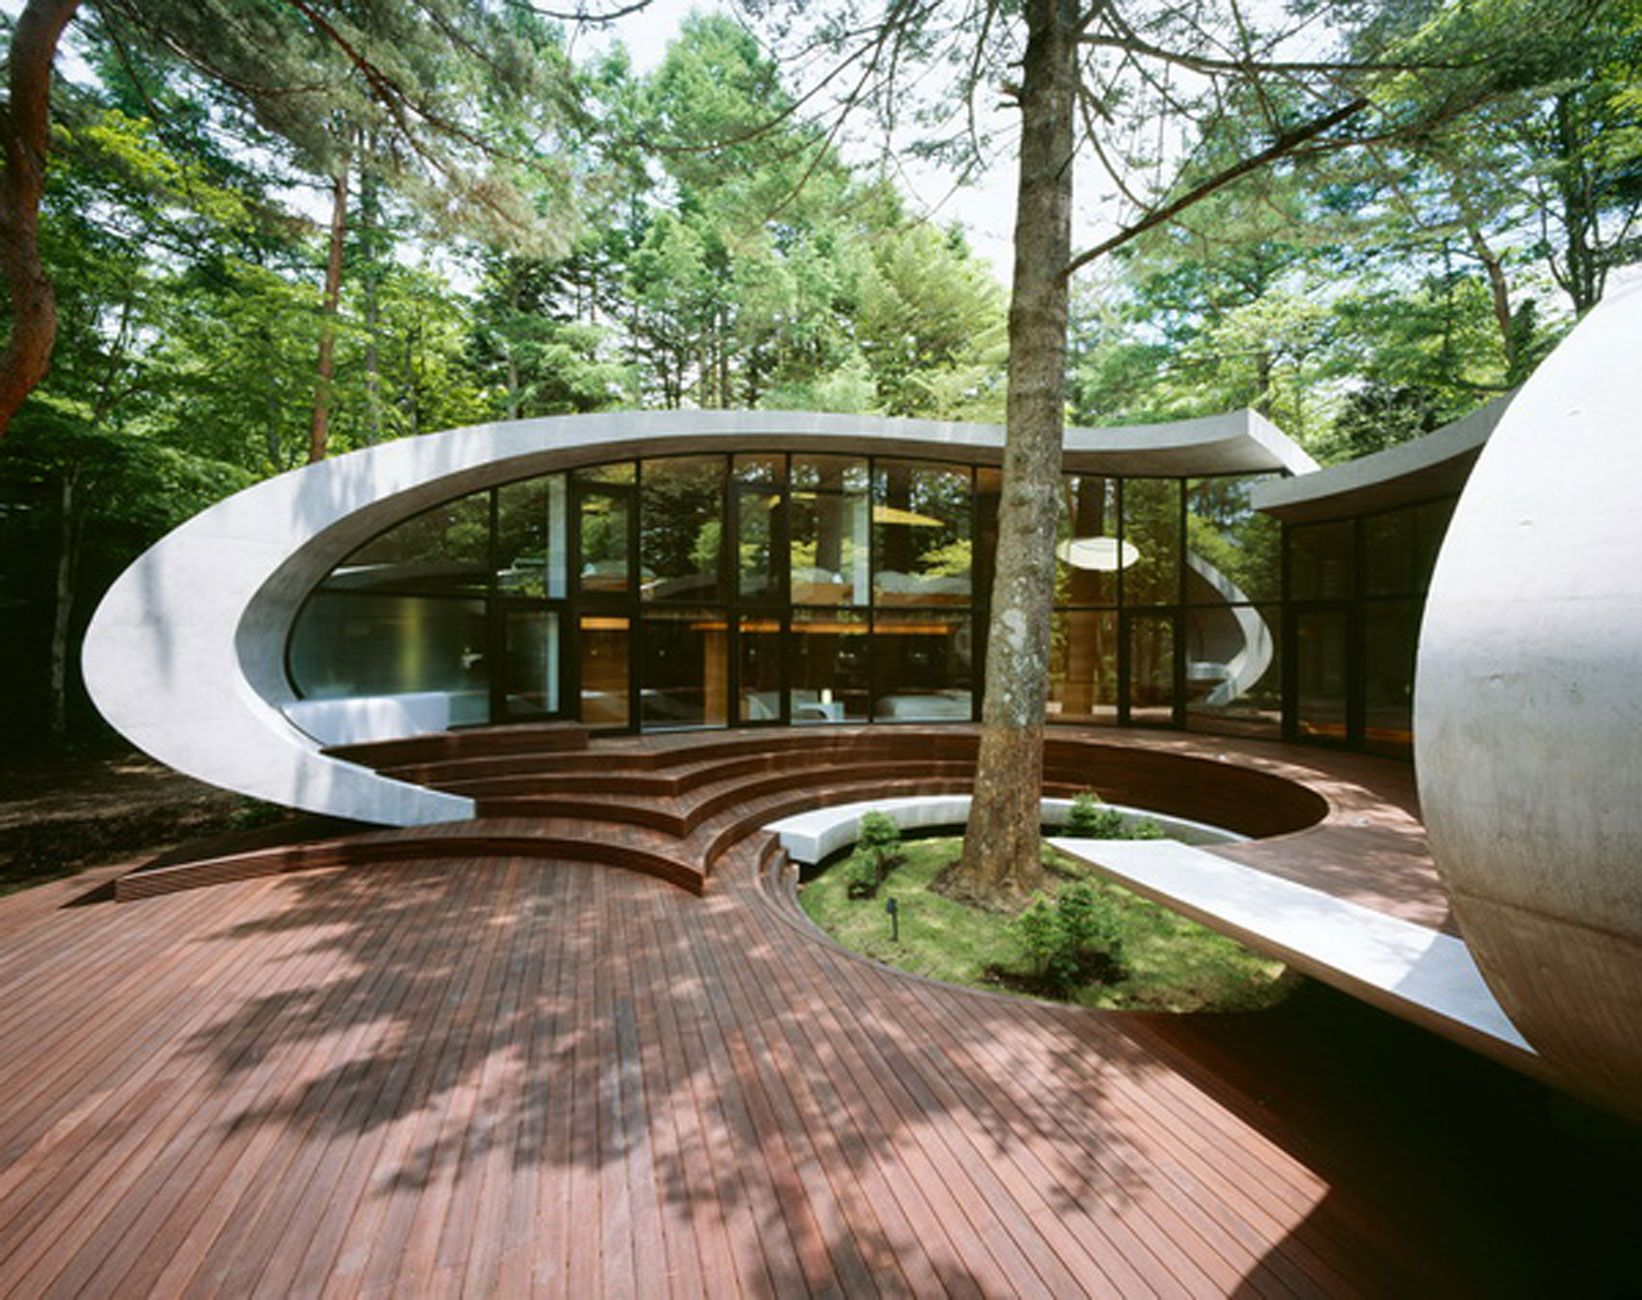 Futuristic Home Design With Natural Environment In Japan Garden Viahouse Com